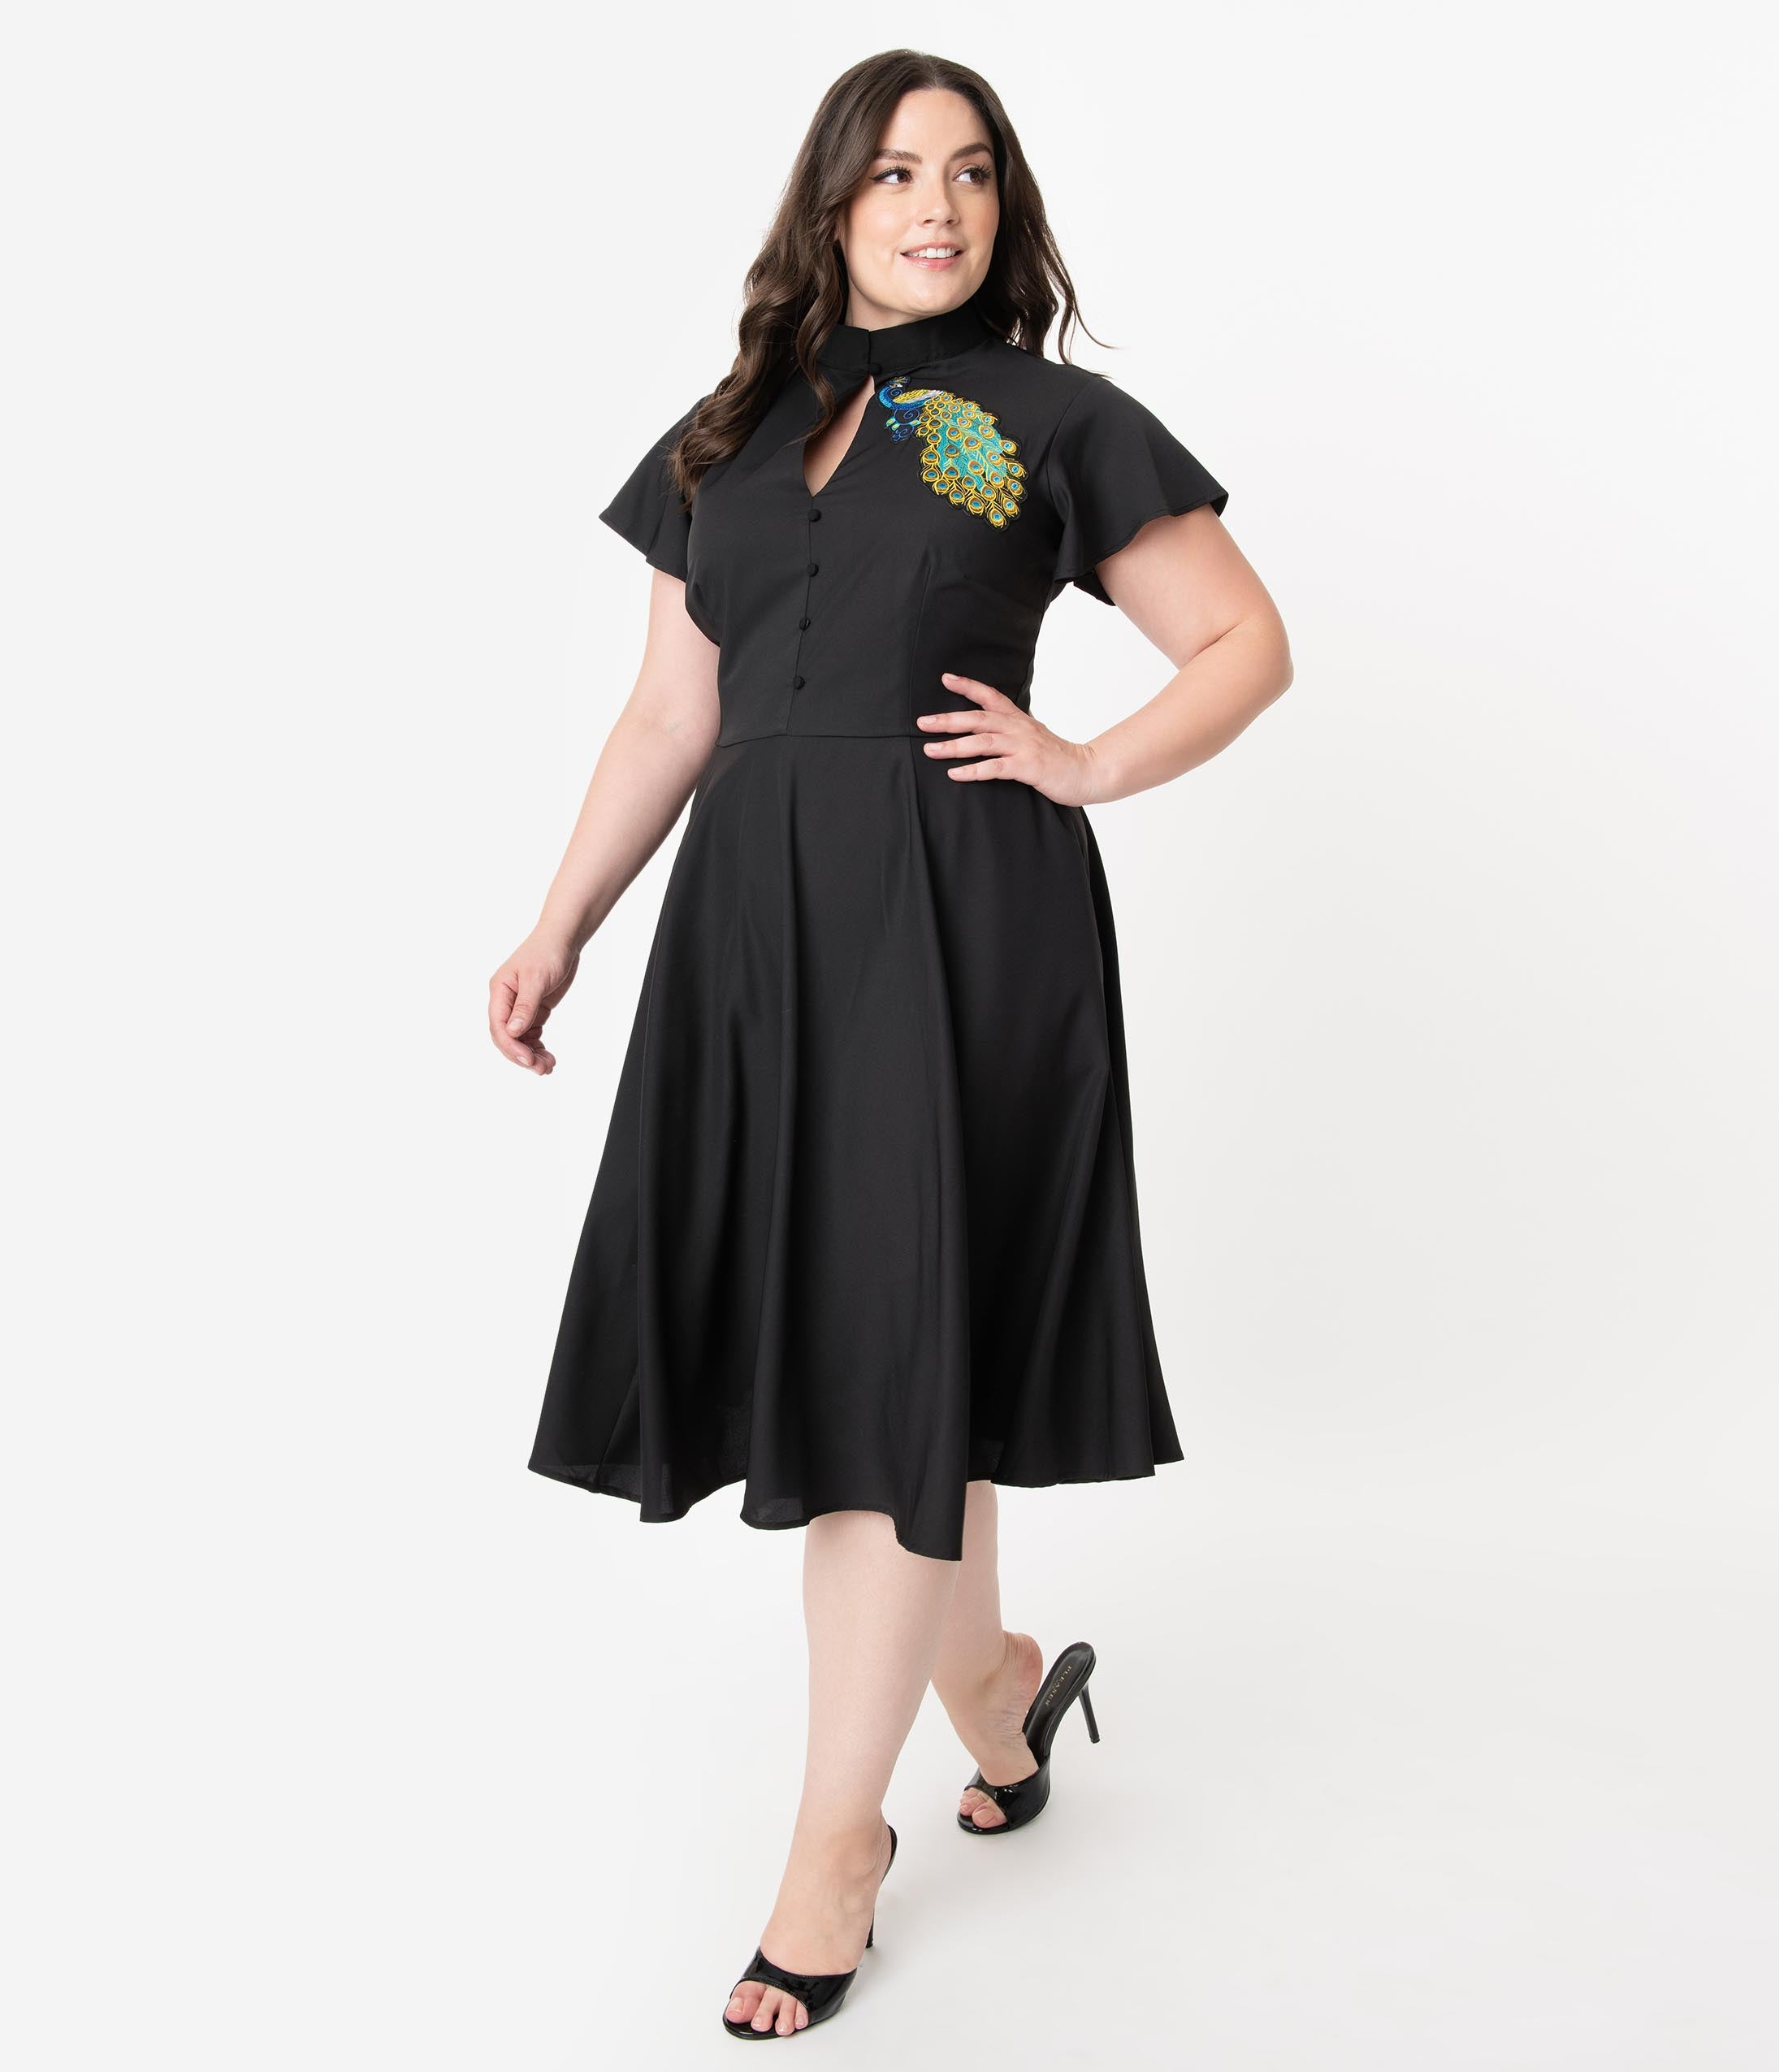 1940s Plus Size Dresses | Swing Dress, Tea Dress Unique Vintage Plus Size Black  Embroidered Peacock Baltimore Swing Dress $98.00 AT vintagedancer.com